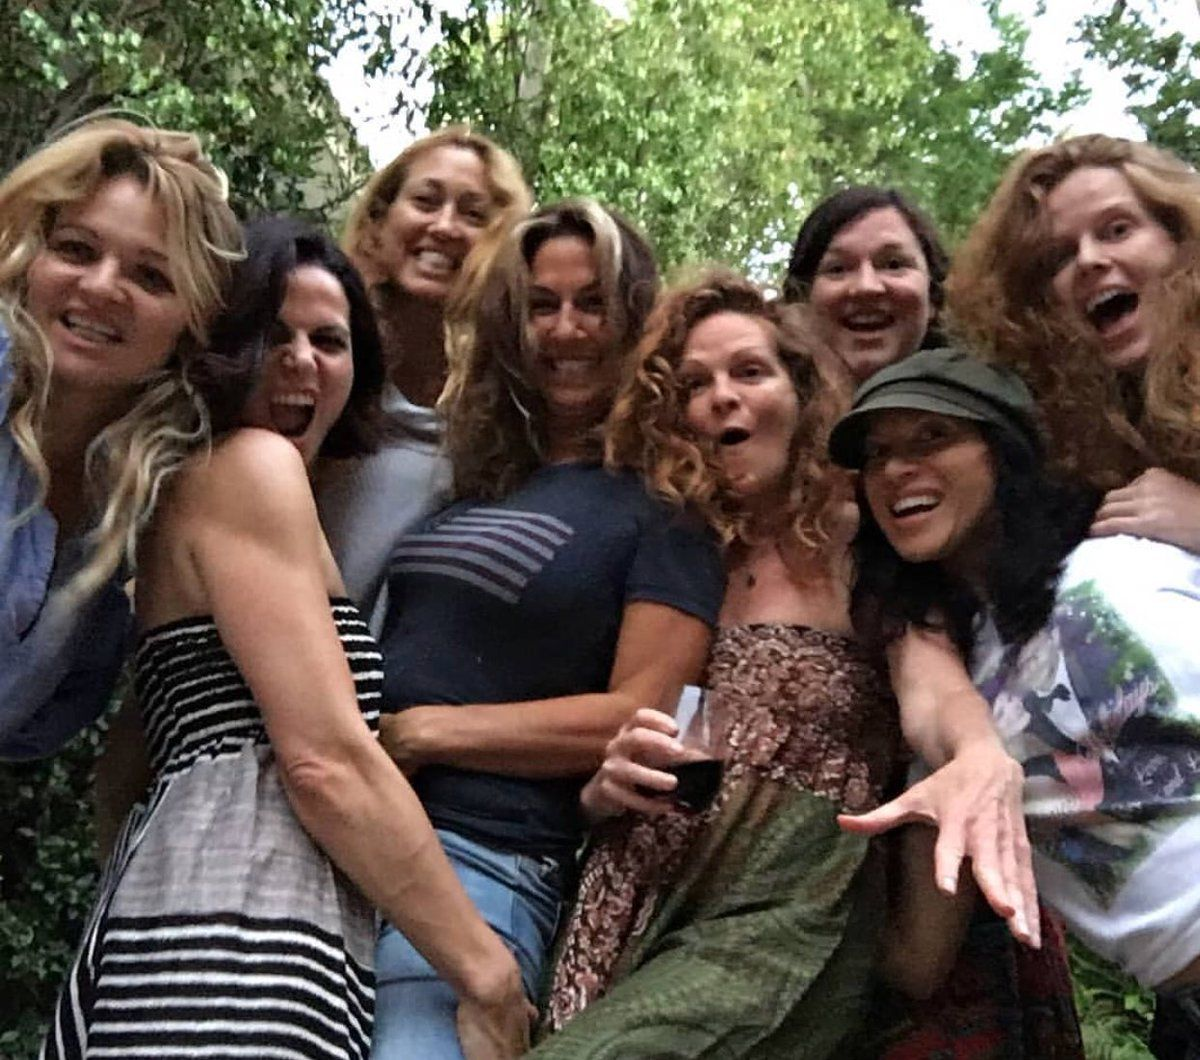 Lana Parrilla And Friends Lana Parrilla The Queen Is Dead Spin City